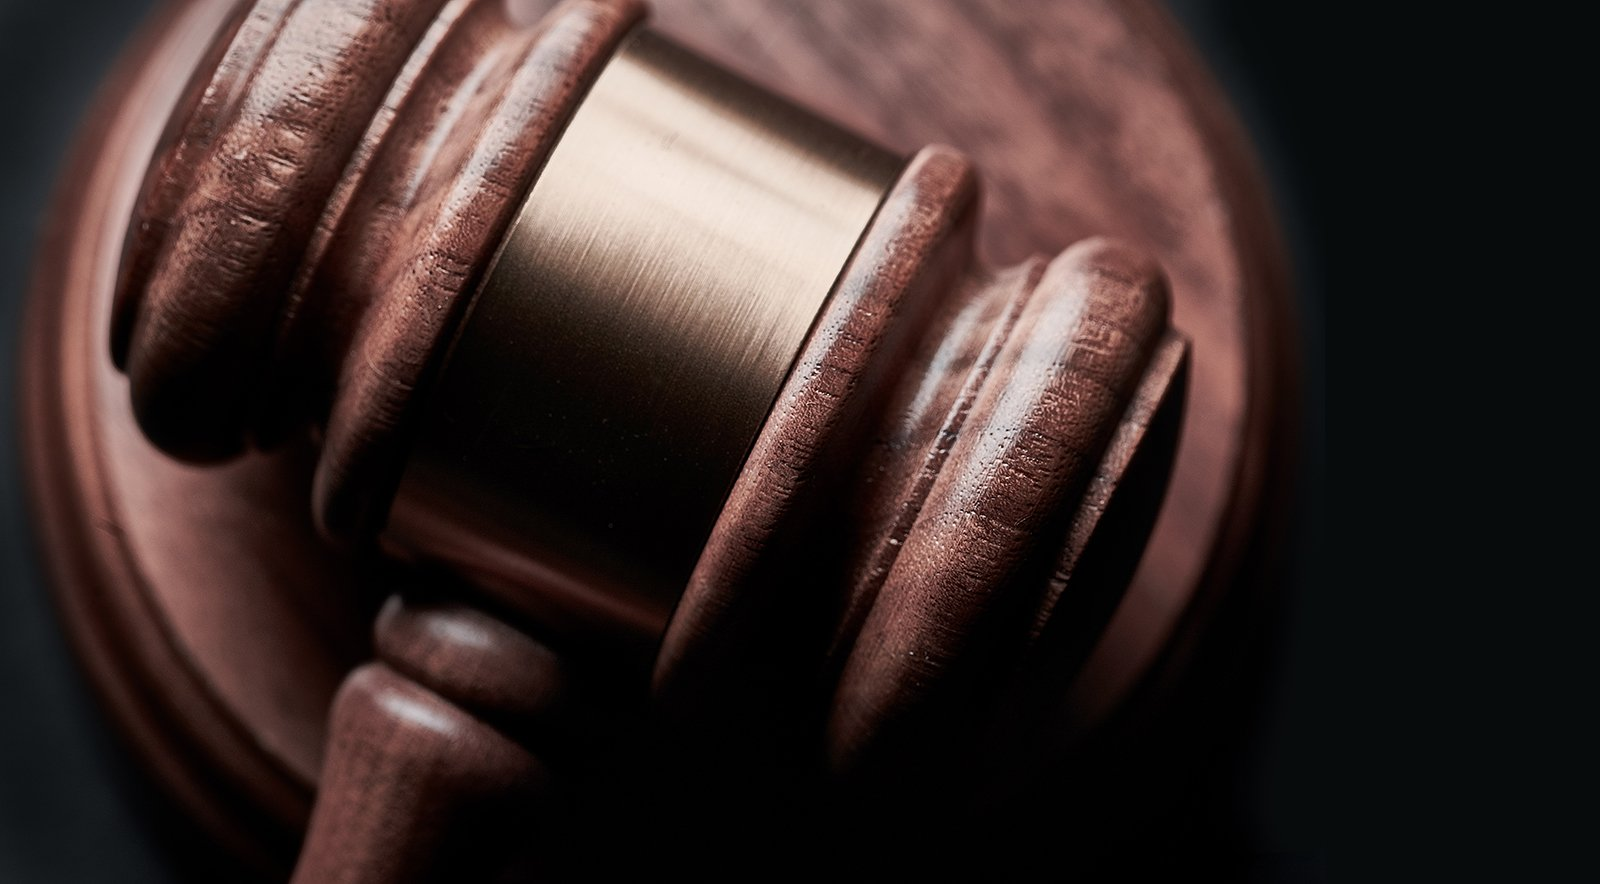 Houston woman faces historic indictment over female genital cutting